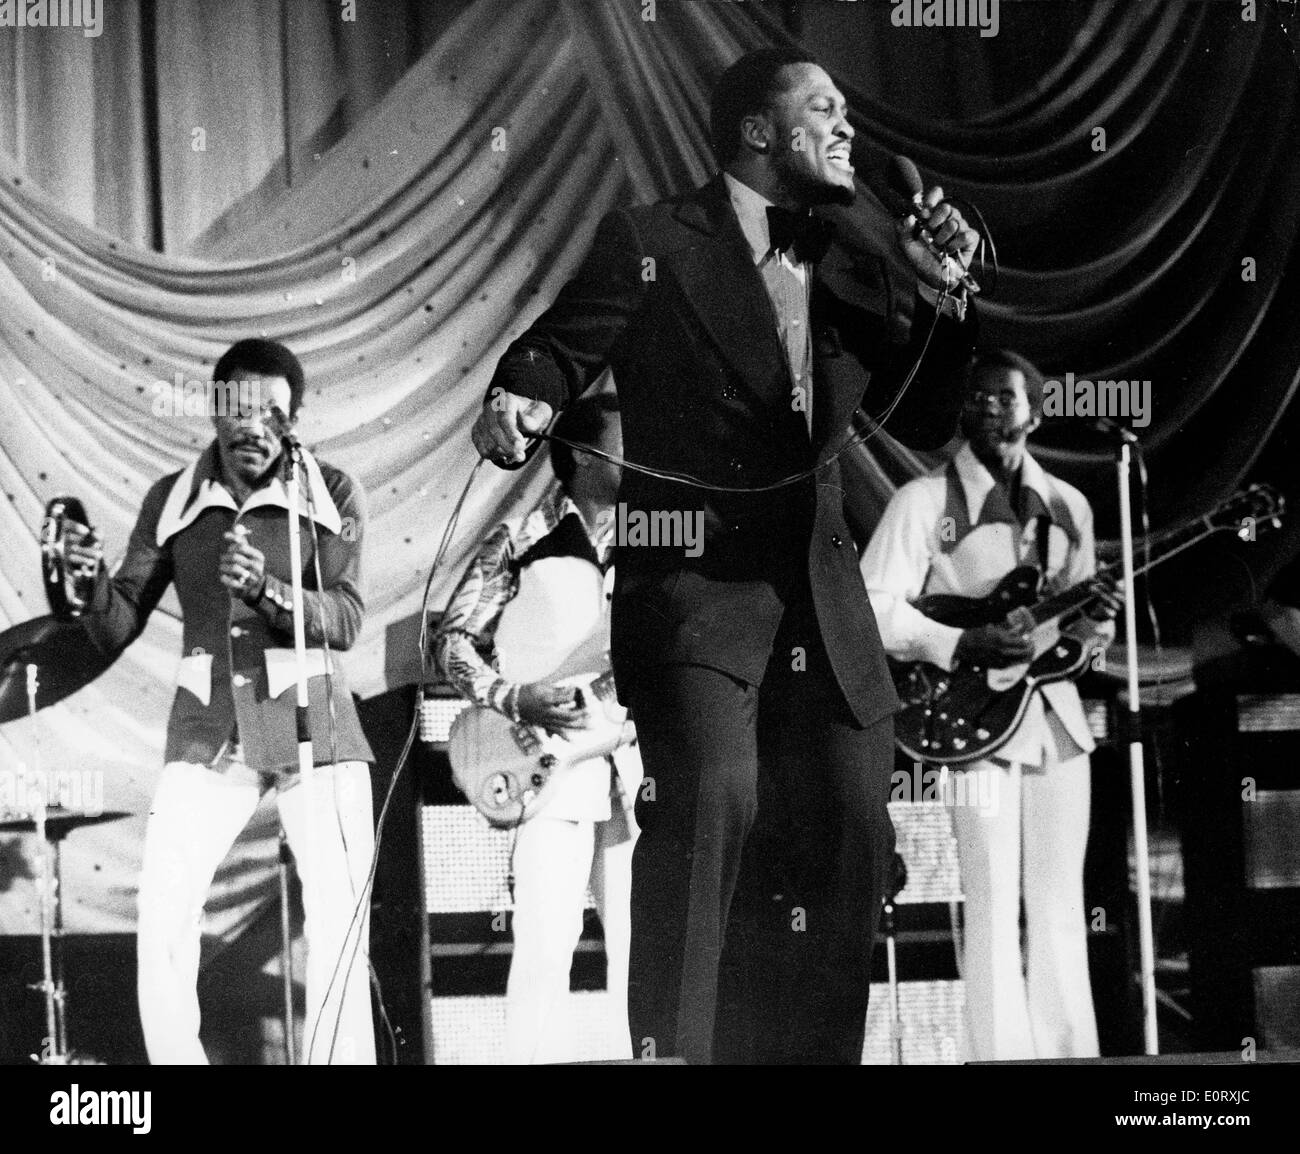 Boxer Smokin' Joe Frazier on stage singing with his band - Stock Image